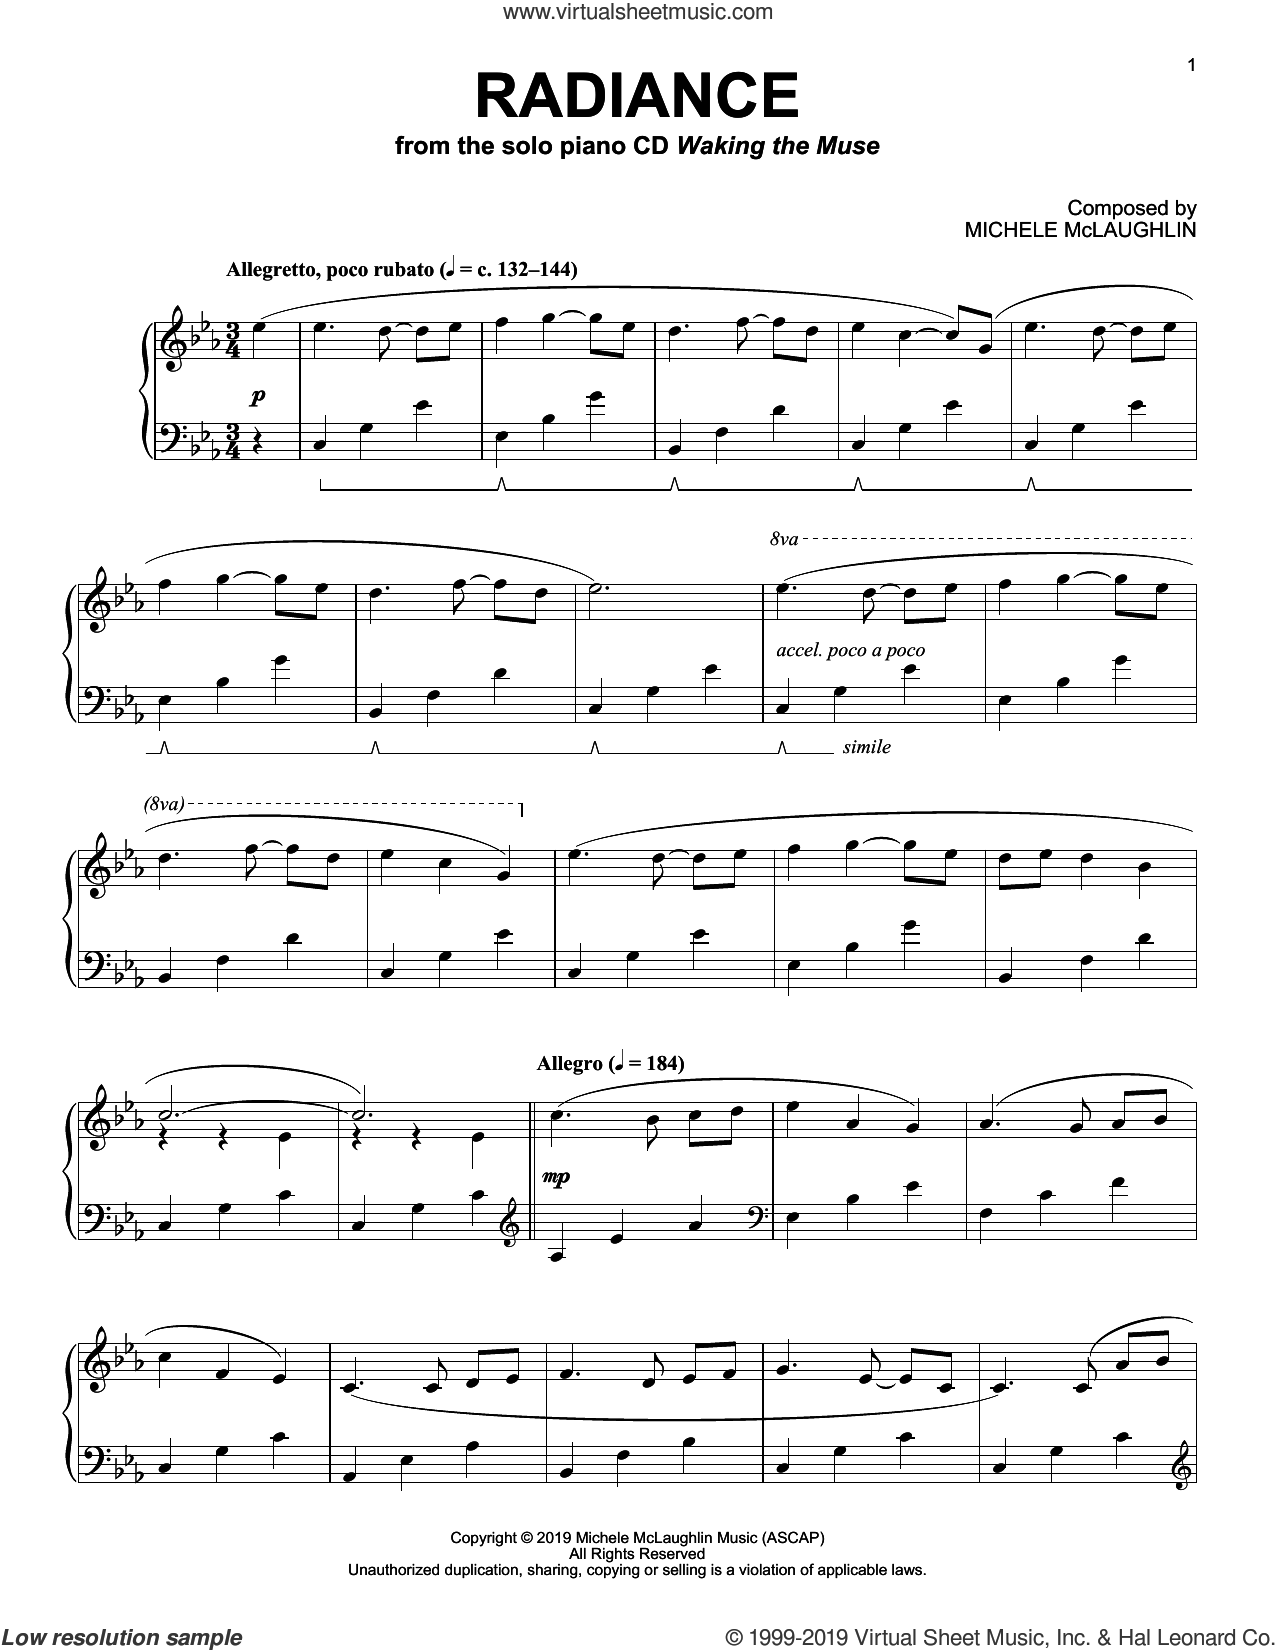 Radiance sheet music for piano solo by Michele McLaughlin, intermediate skill level